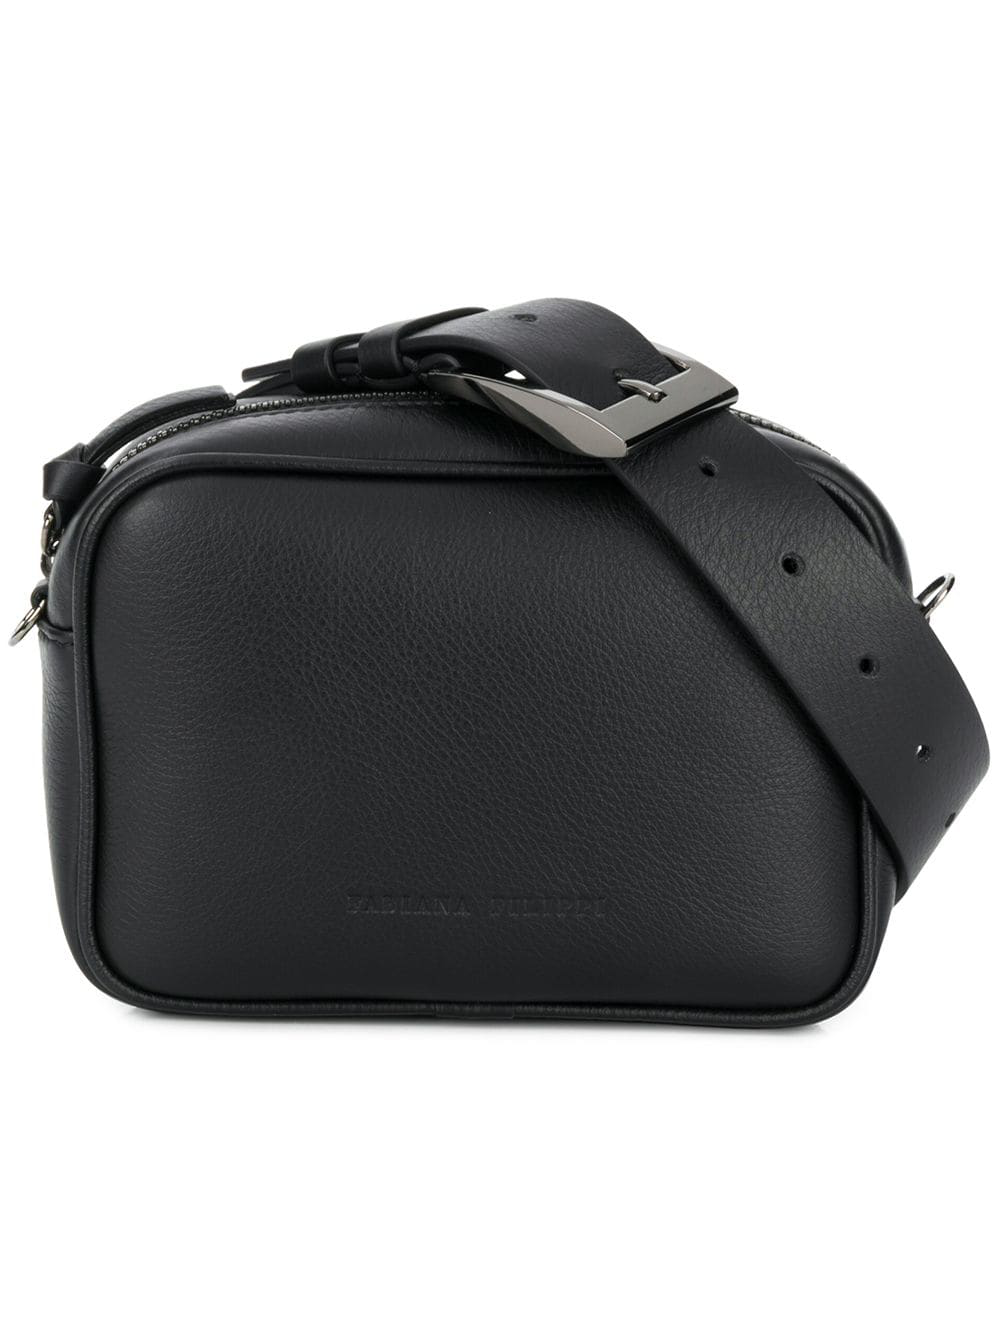 ce1c55d227 Fabiana Filippi Embossed Logo Mini Bag - Black In Vr4 Black | ModeSens